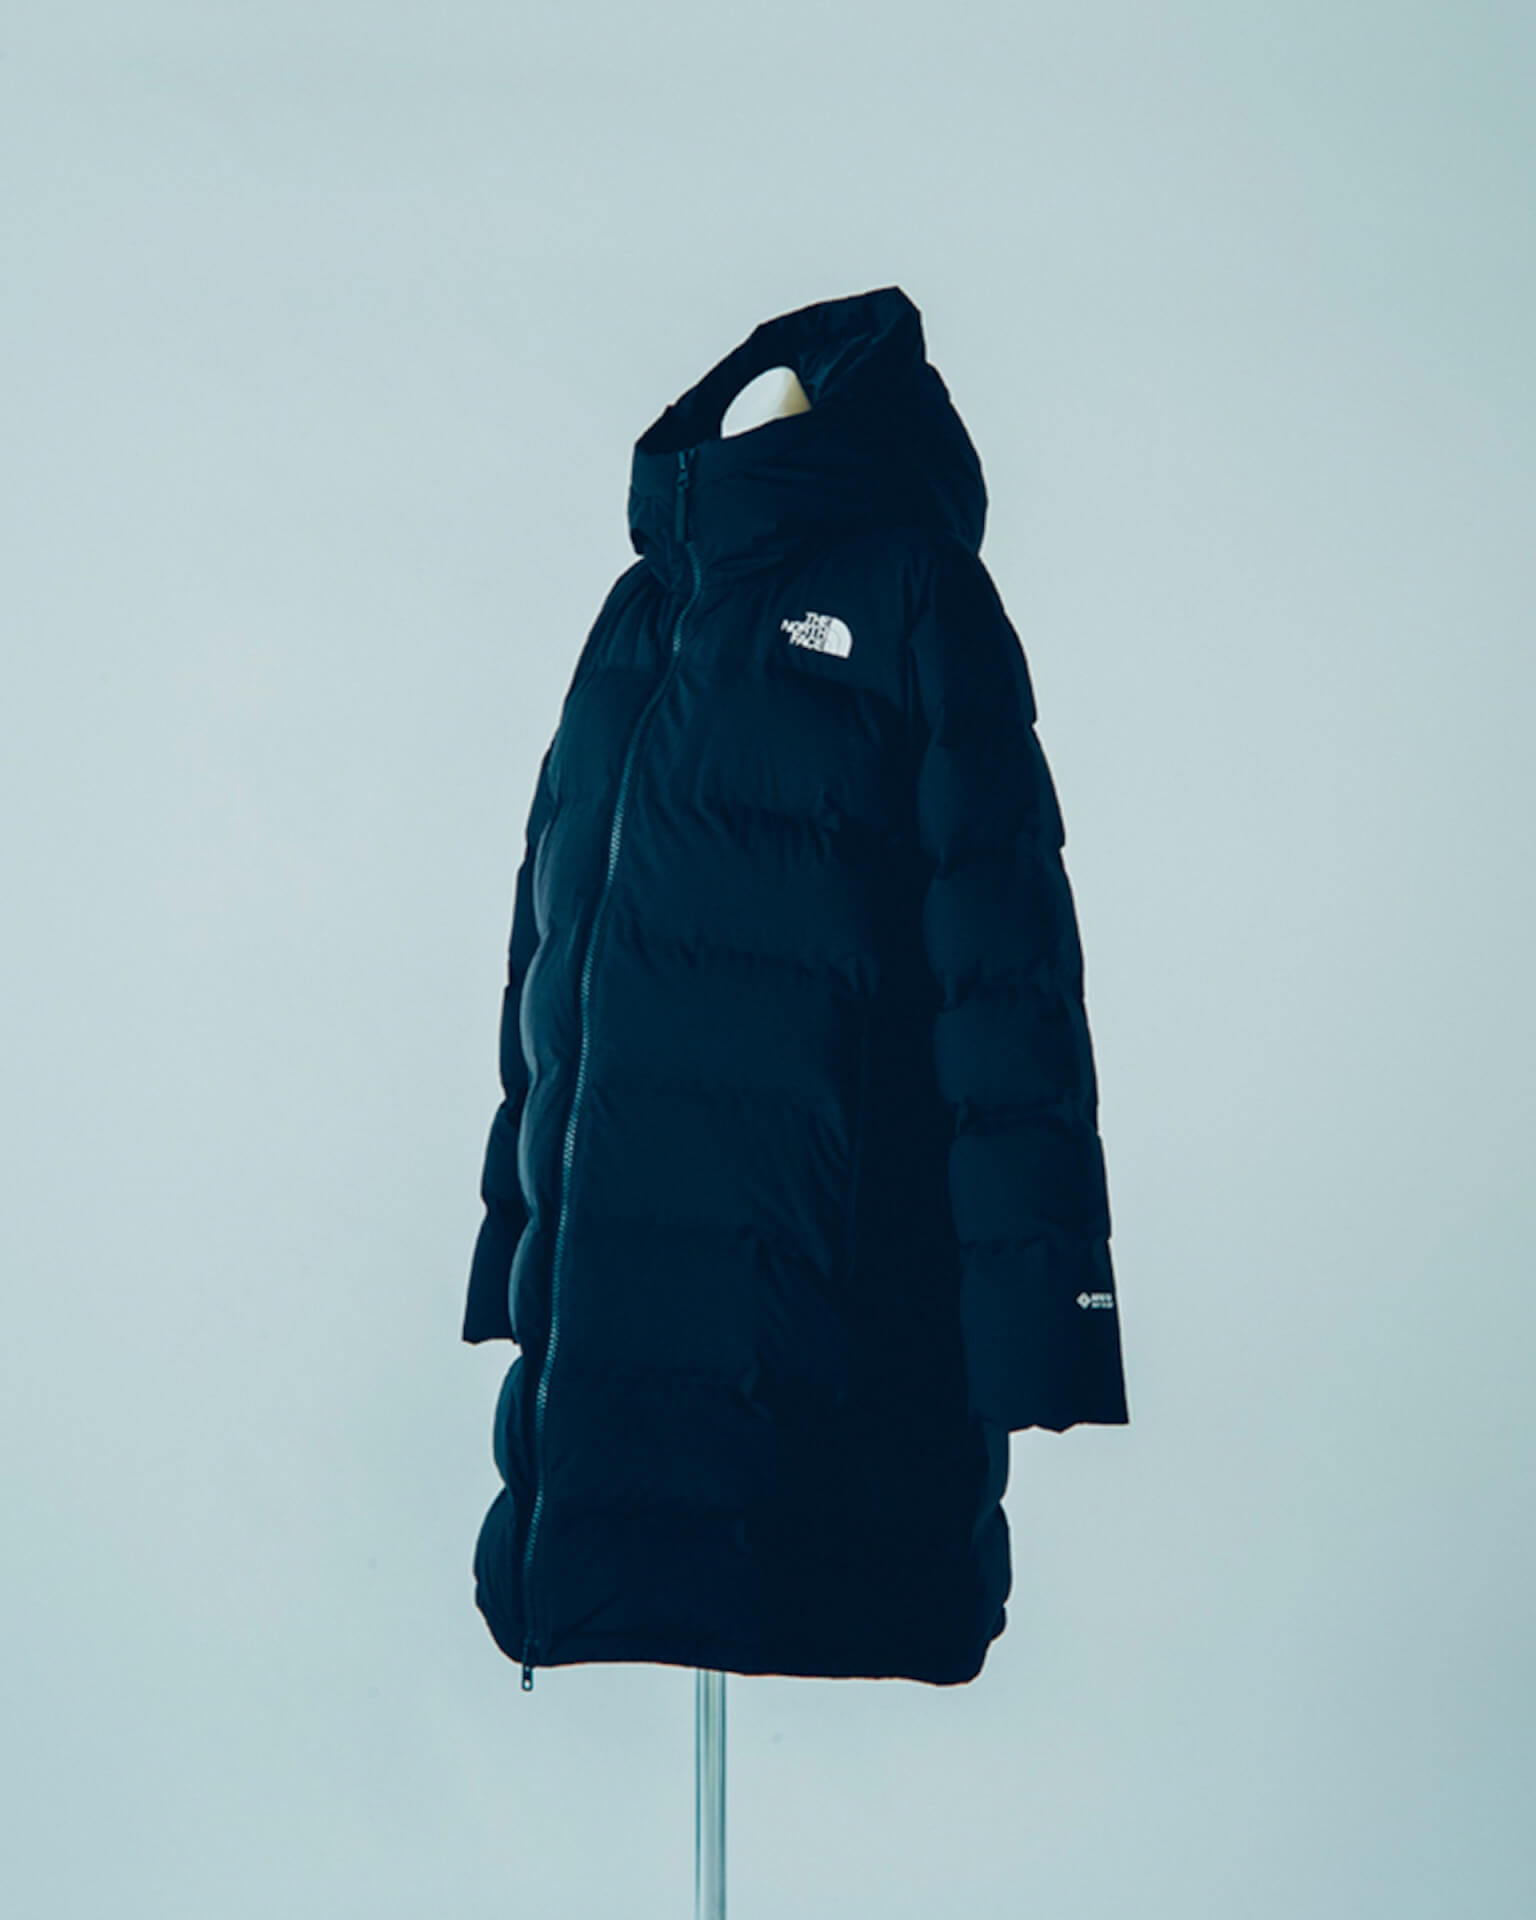 THE NORTH FACE、ママに優しい機能的マタニティウェアを6型展開で発売 life191007_thenorthface_3